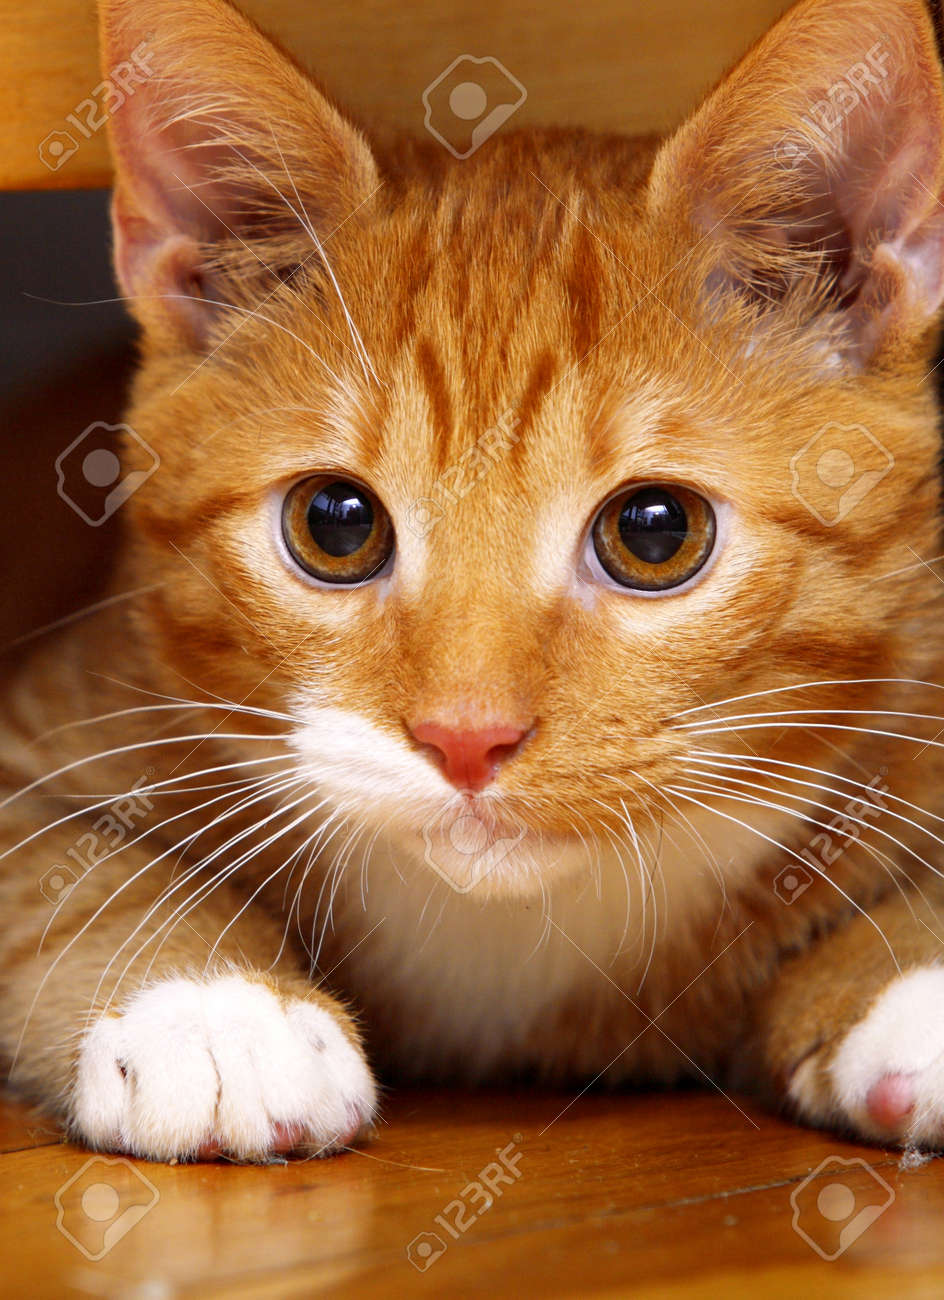 animals at home. close up red cute little baby cat pet kitten